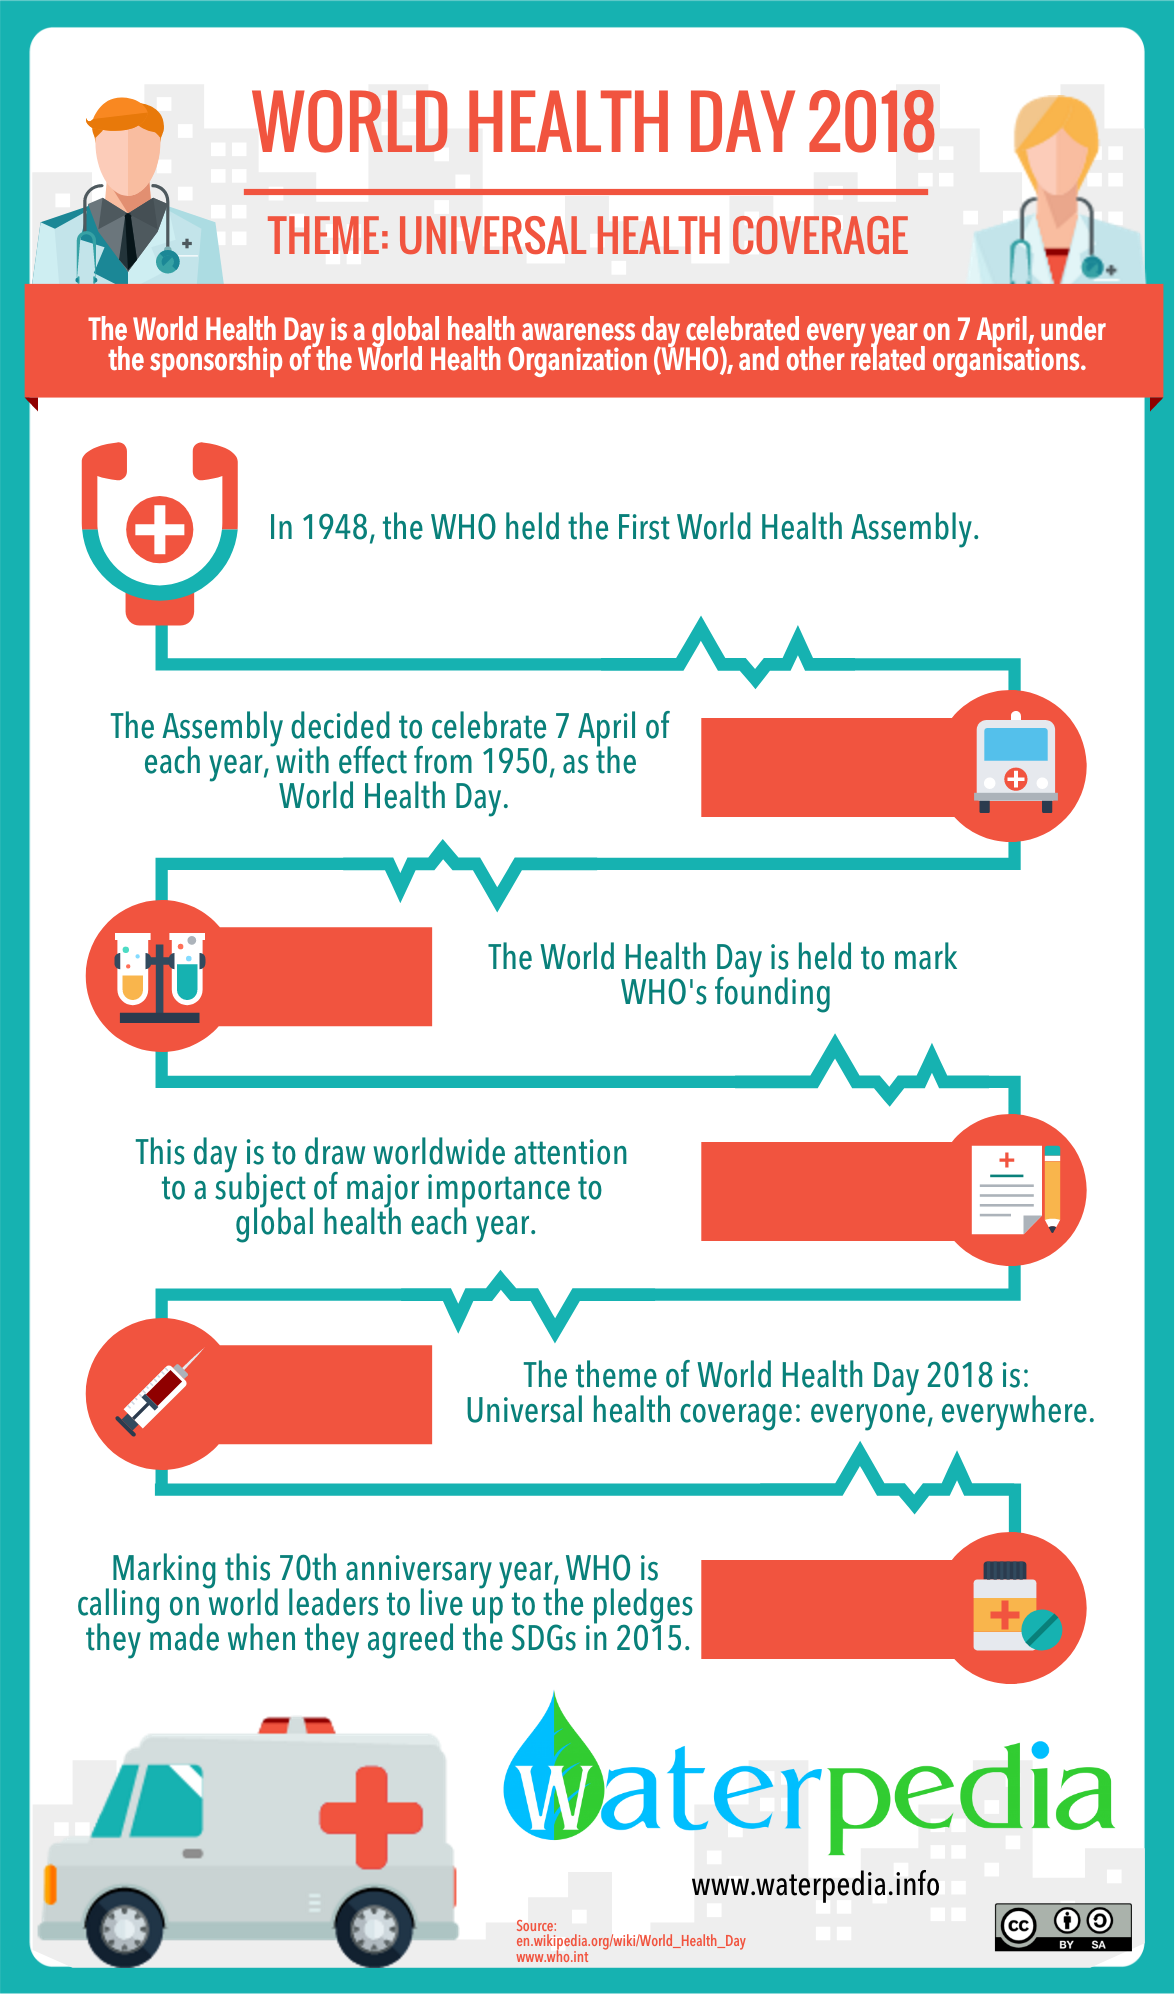 Today In World Health Day 2018 And The Theme Is Universal Health Coverage Share Waterpedia Infographics To The Global Com World Health Day Health Day Health